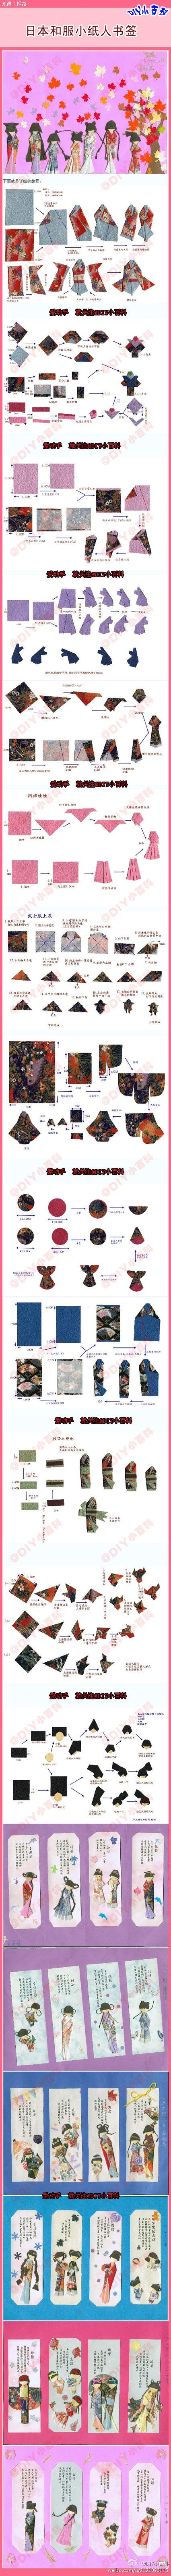 LONG image-tutorial japanese paper doll -  origami type dolls